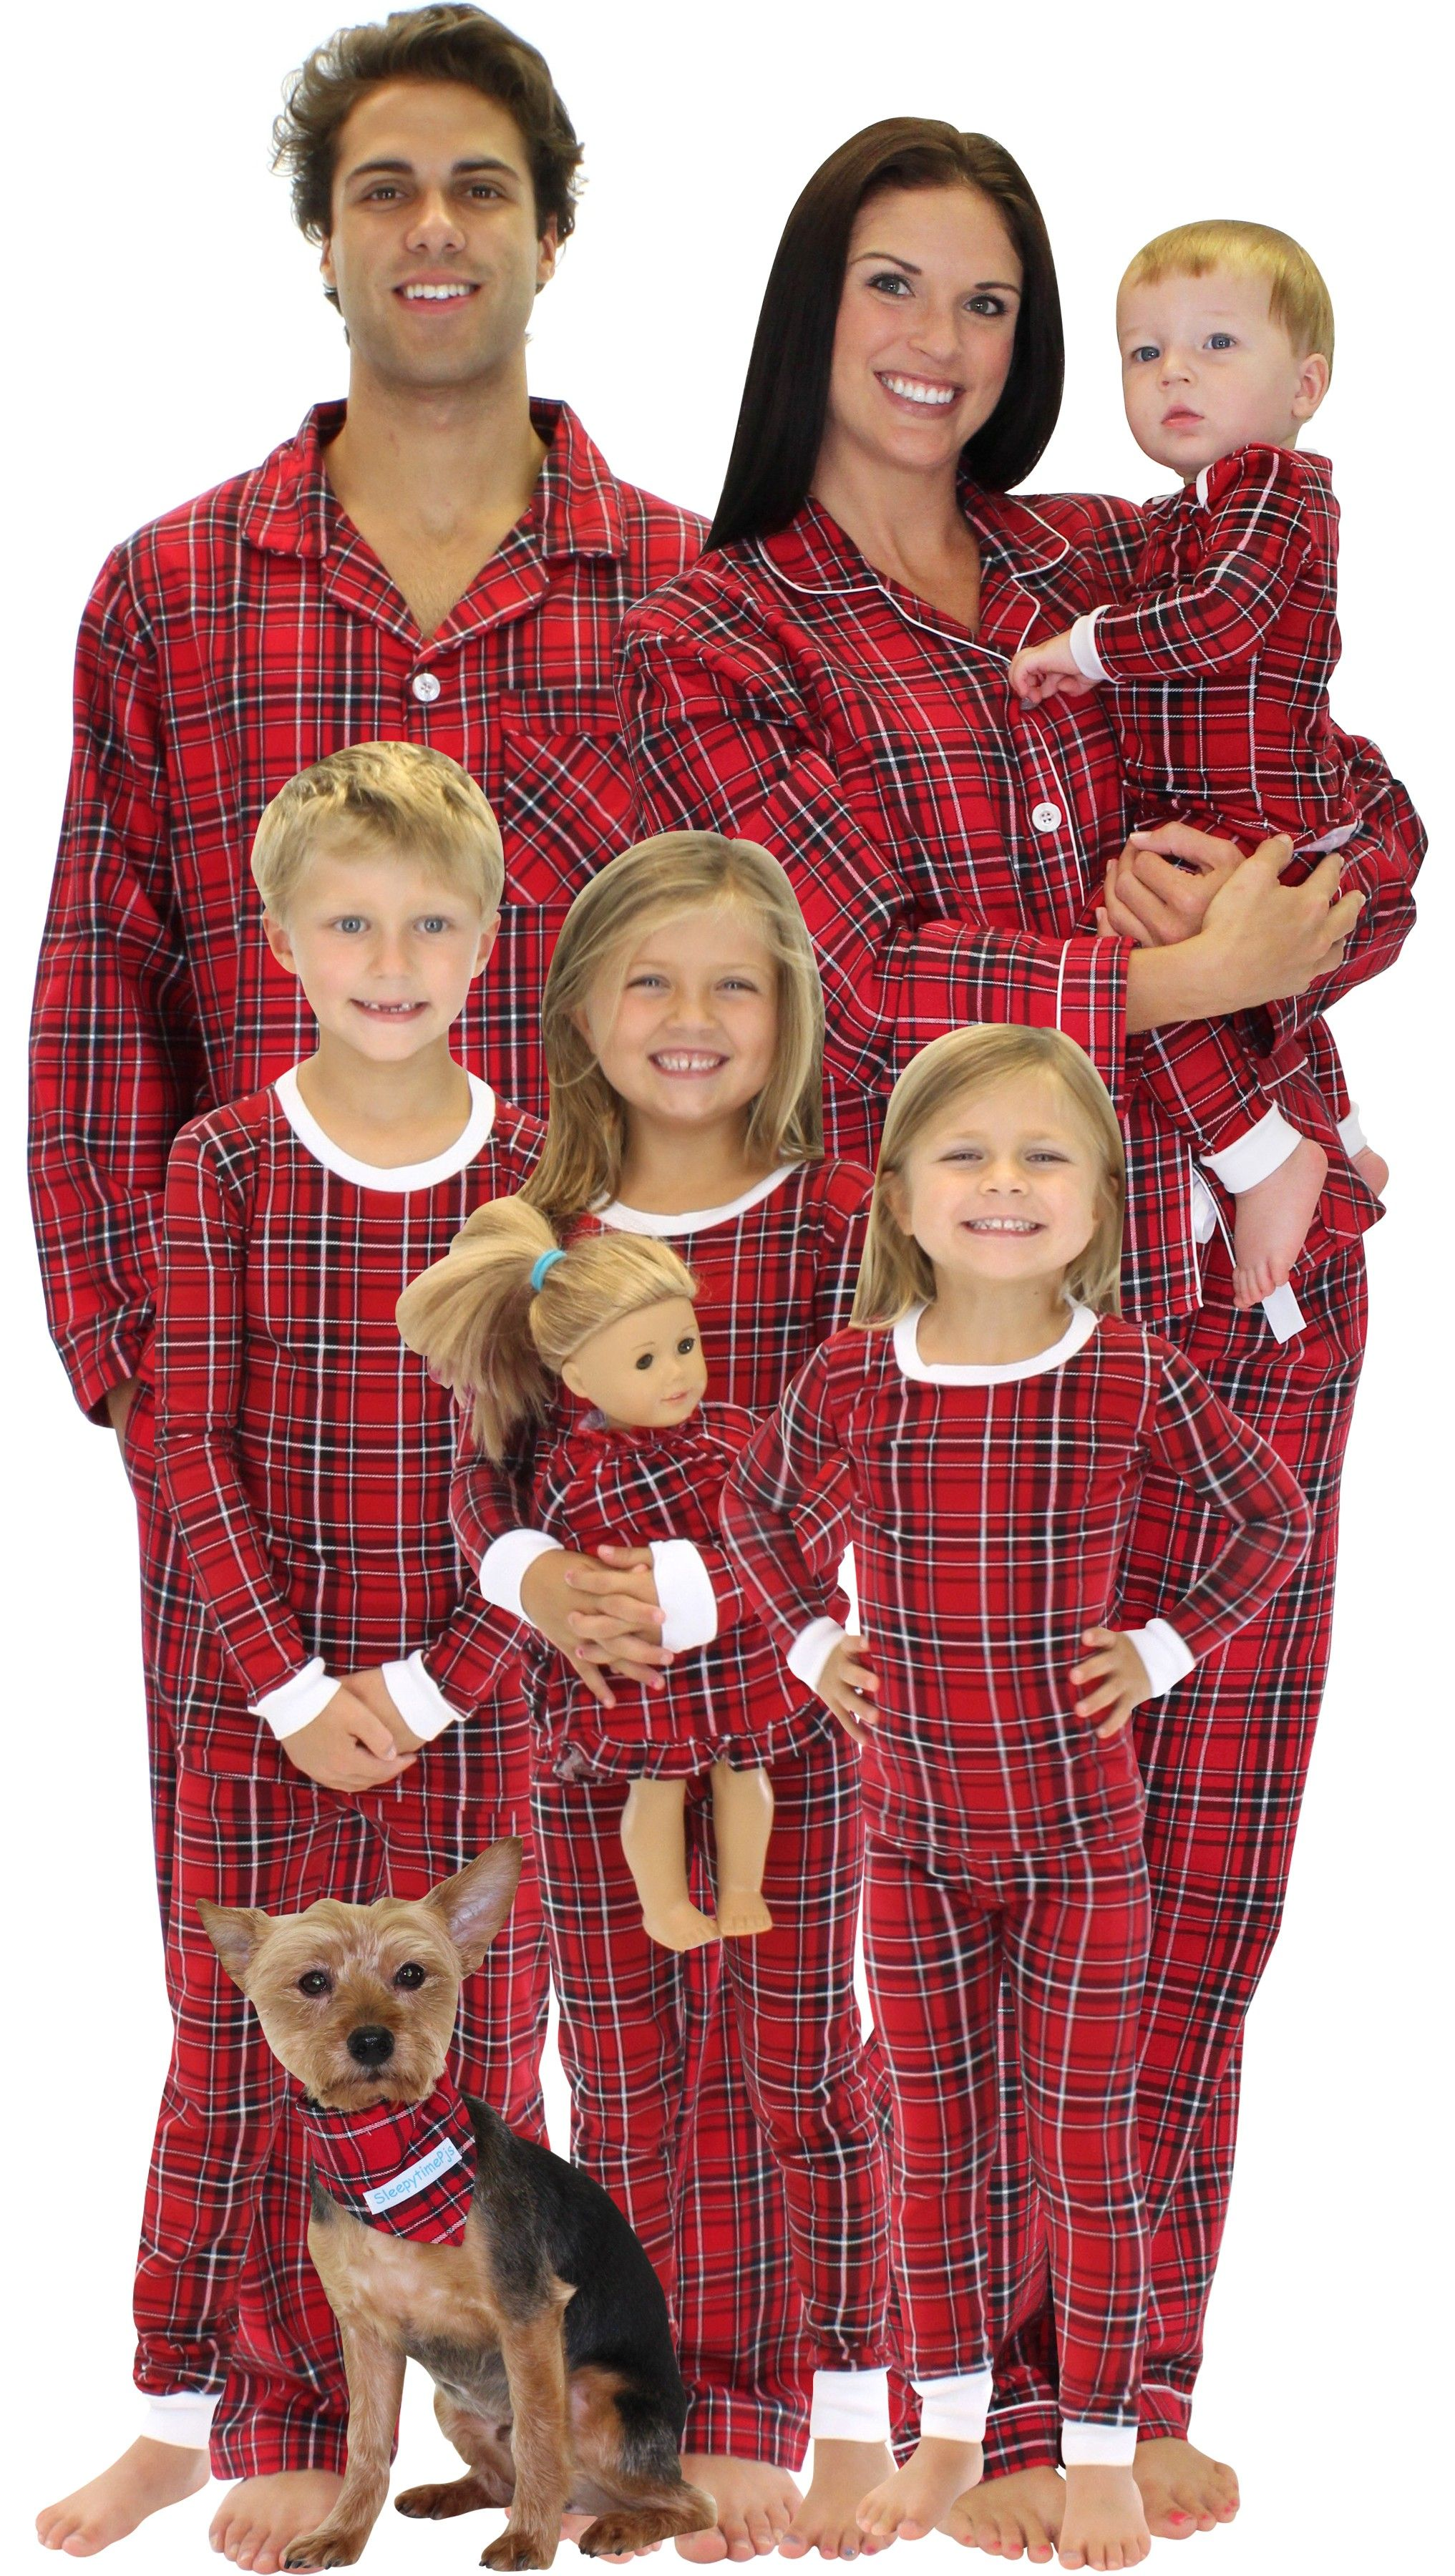 a77896f69484 Red Plaid Family Matching Christmas Pajamas by SleepytimePjs ...